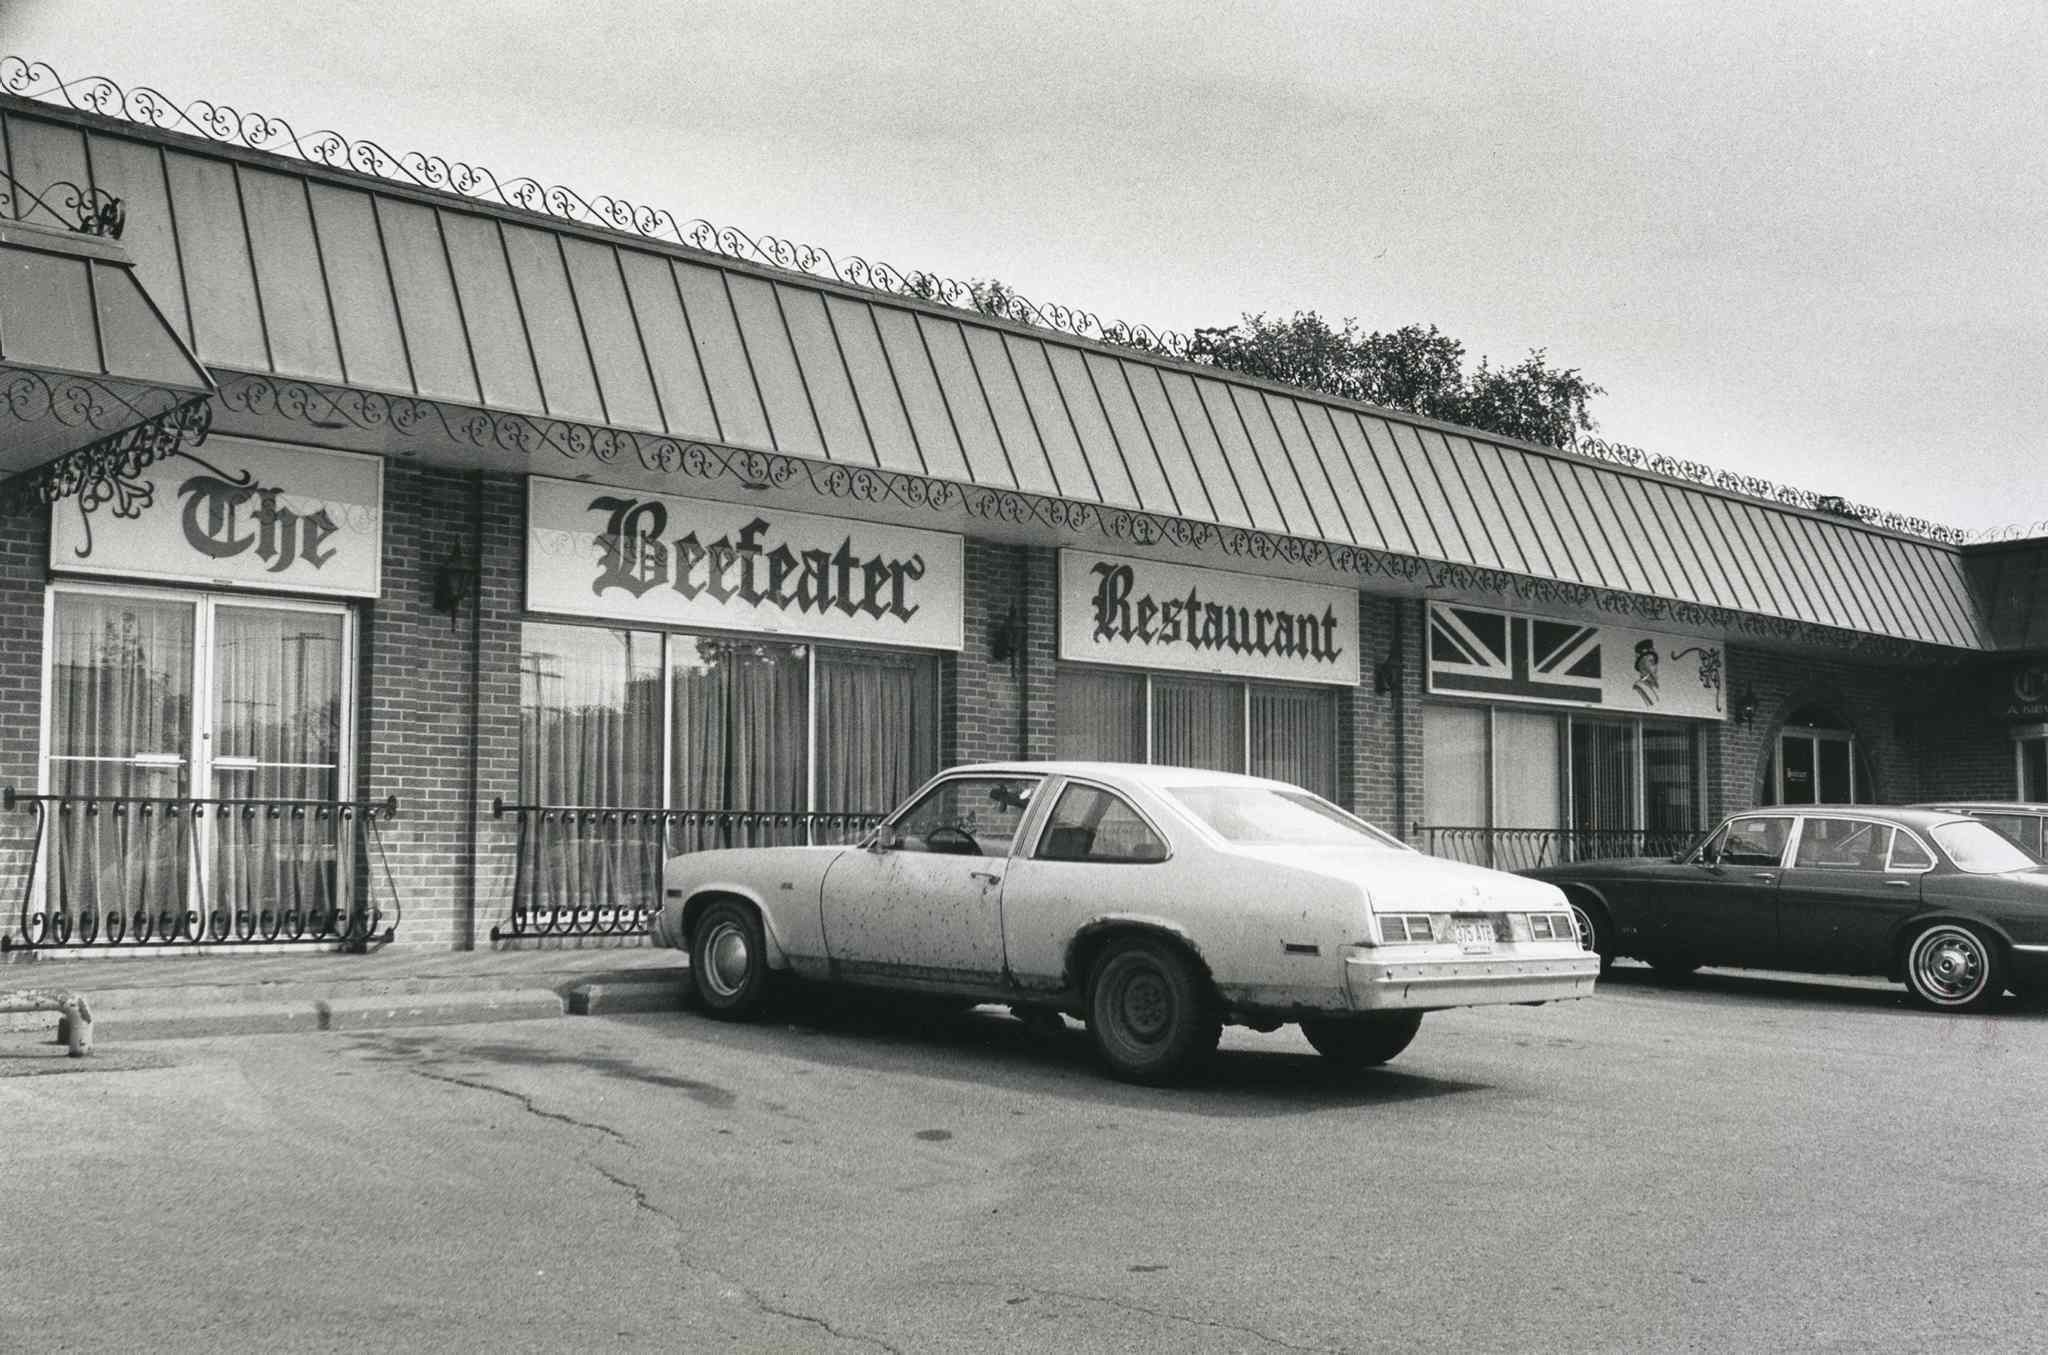 The Beefeater Restaurant, seen in 1989. (Glenn Olsen / Winnipeg Free Press files)